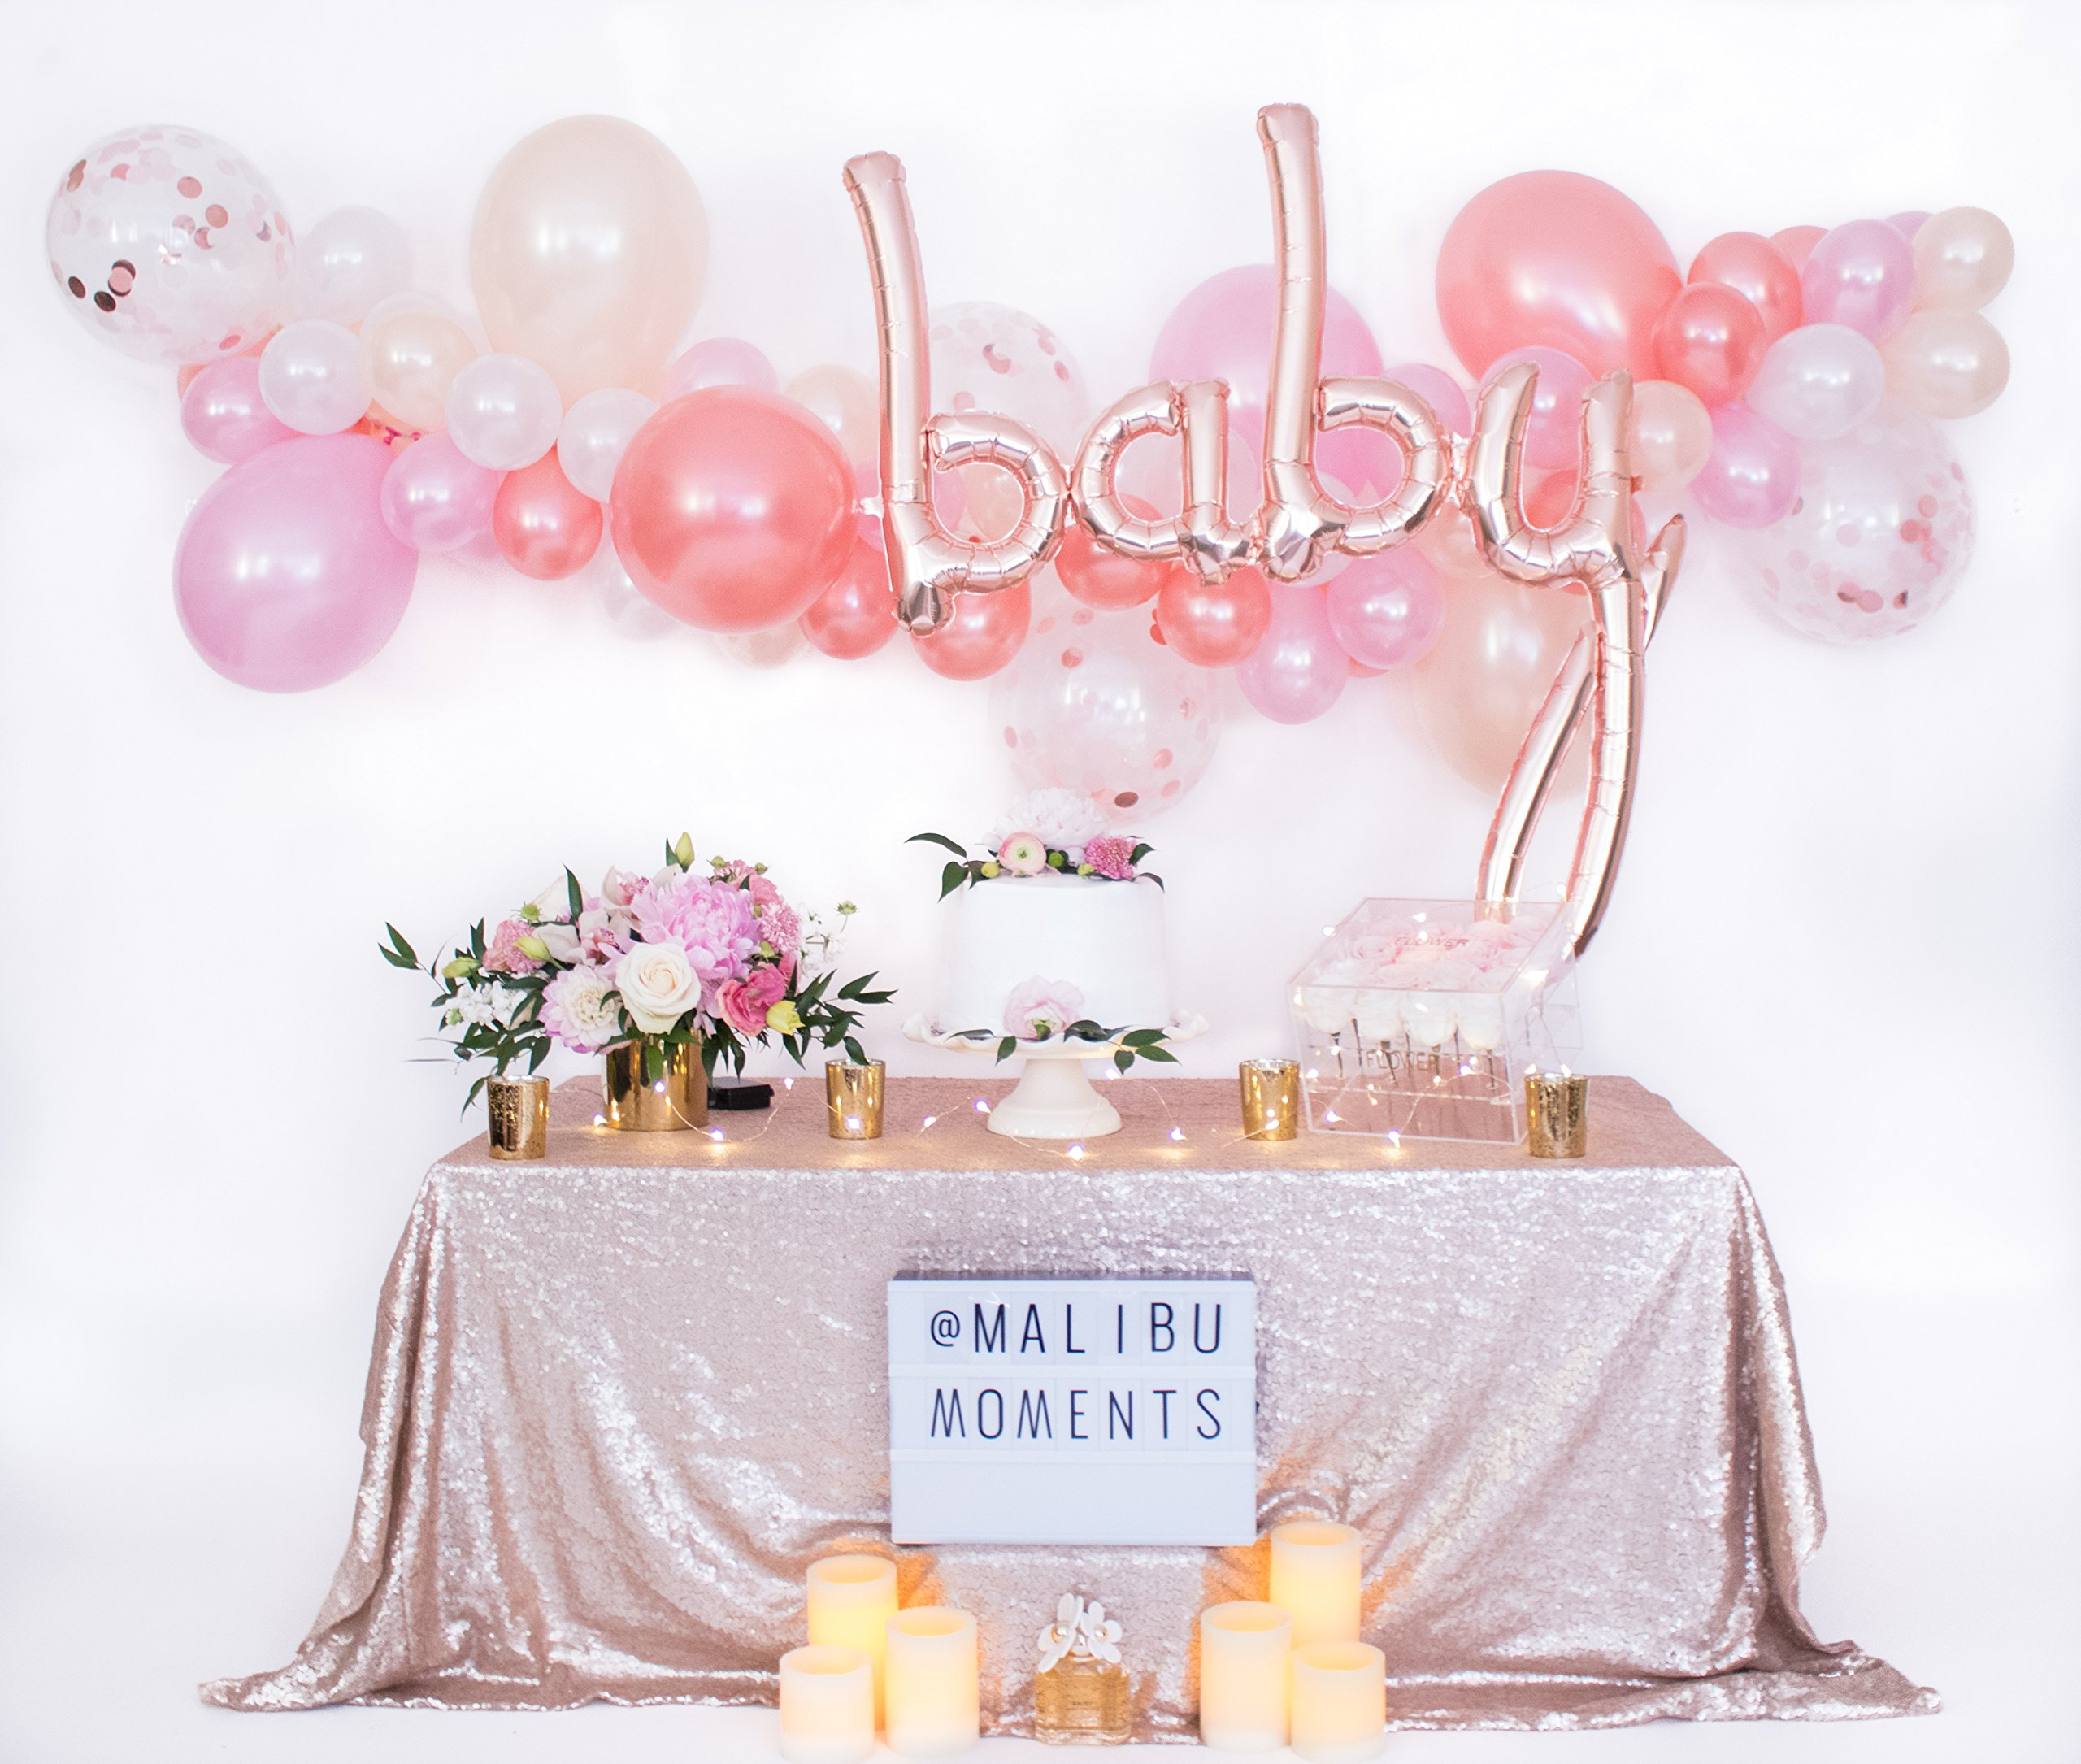 Baby Shower Decorations for Girl   Baby Girl Party Supplies  It's a Girl   Balloon Garland with 72 Balloons 11'' & 5'' Pink, Blush and Confetti with Rose Gold Baby Script Balloon (Pink) by Malibu Moments (Image #2)